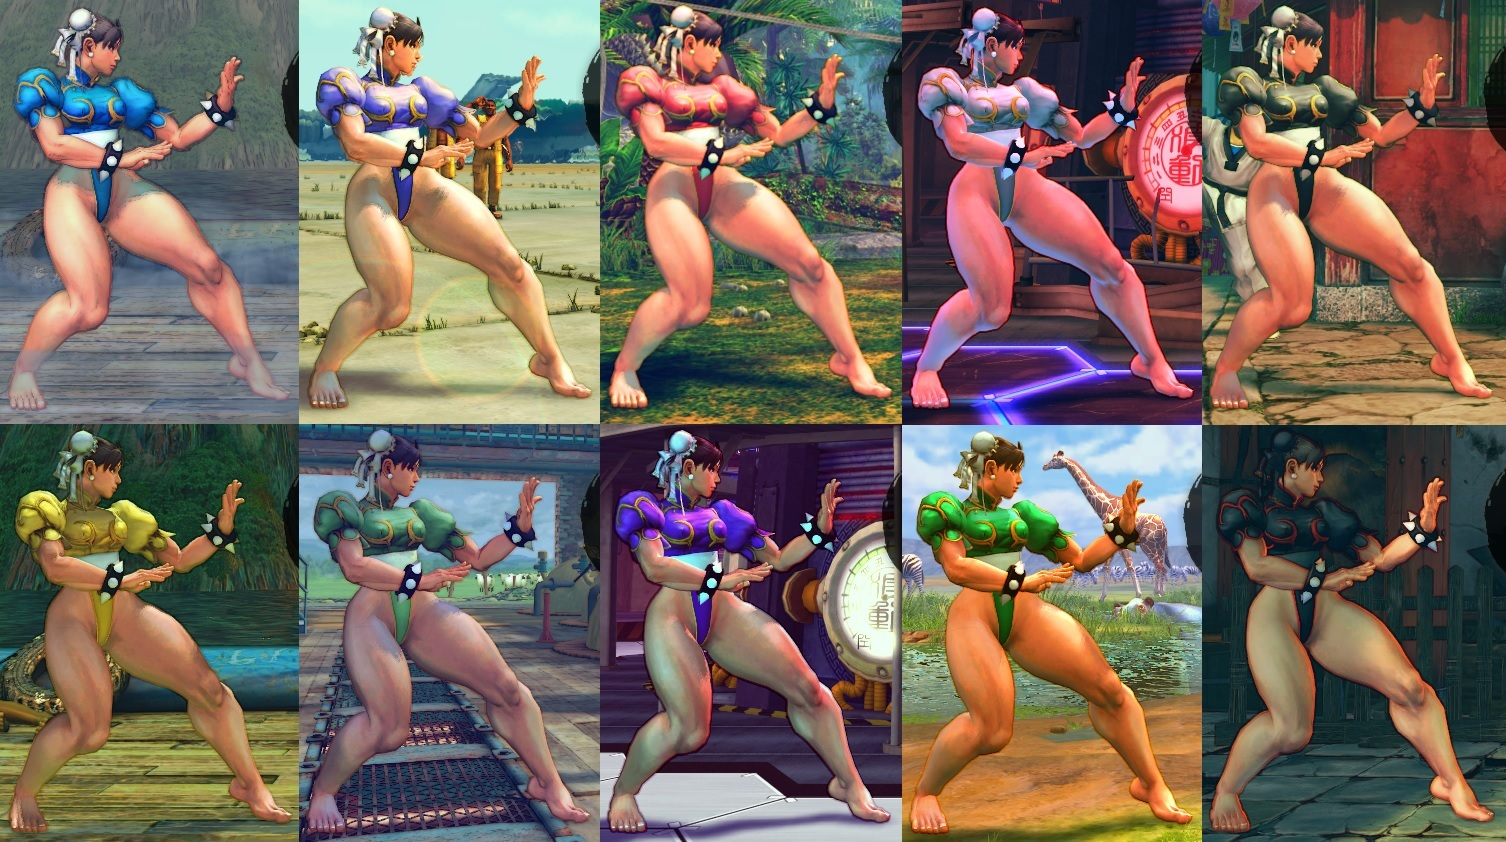 Street fighter iv nud hentai picture